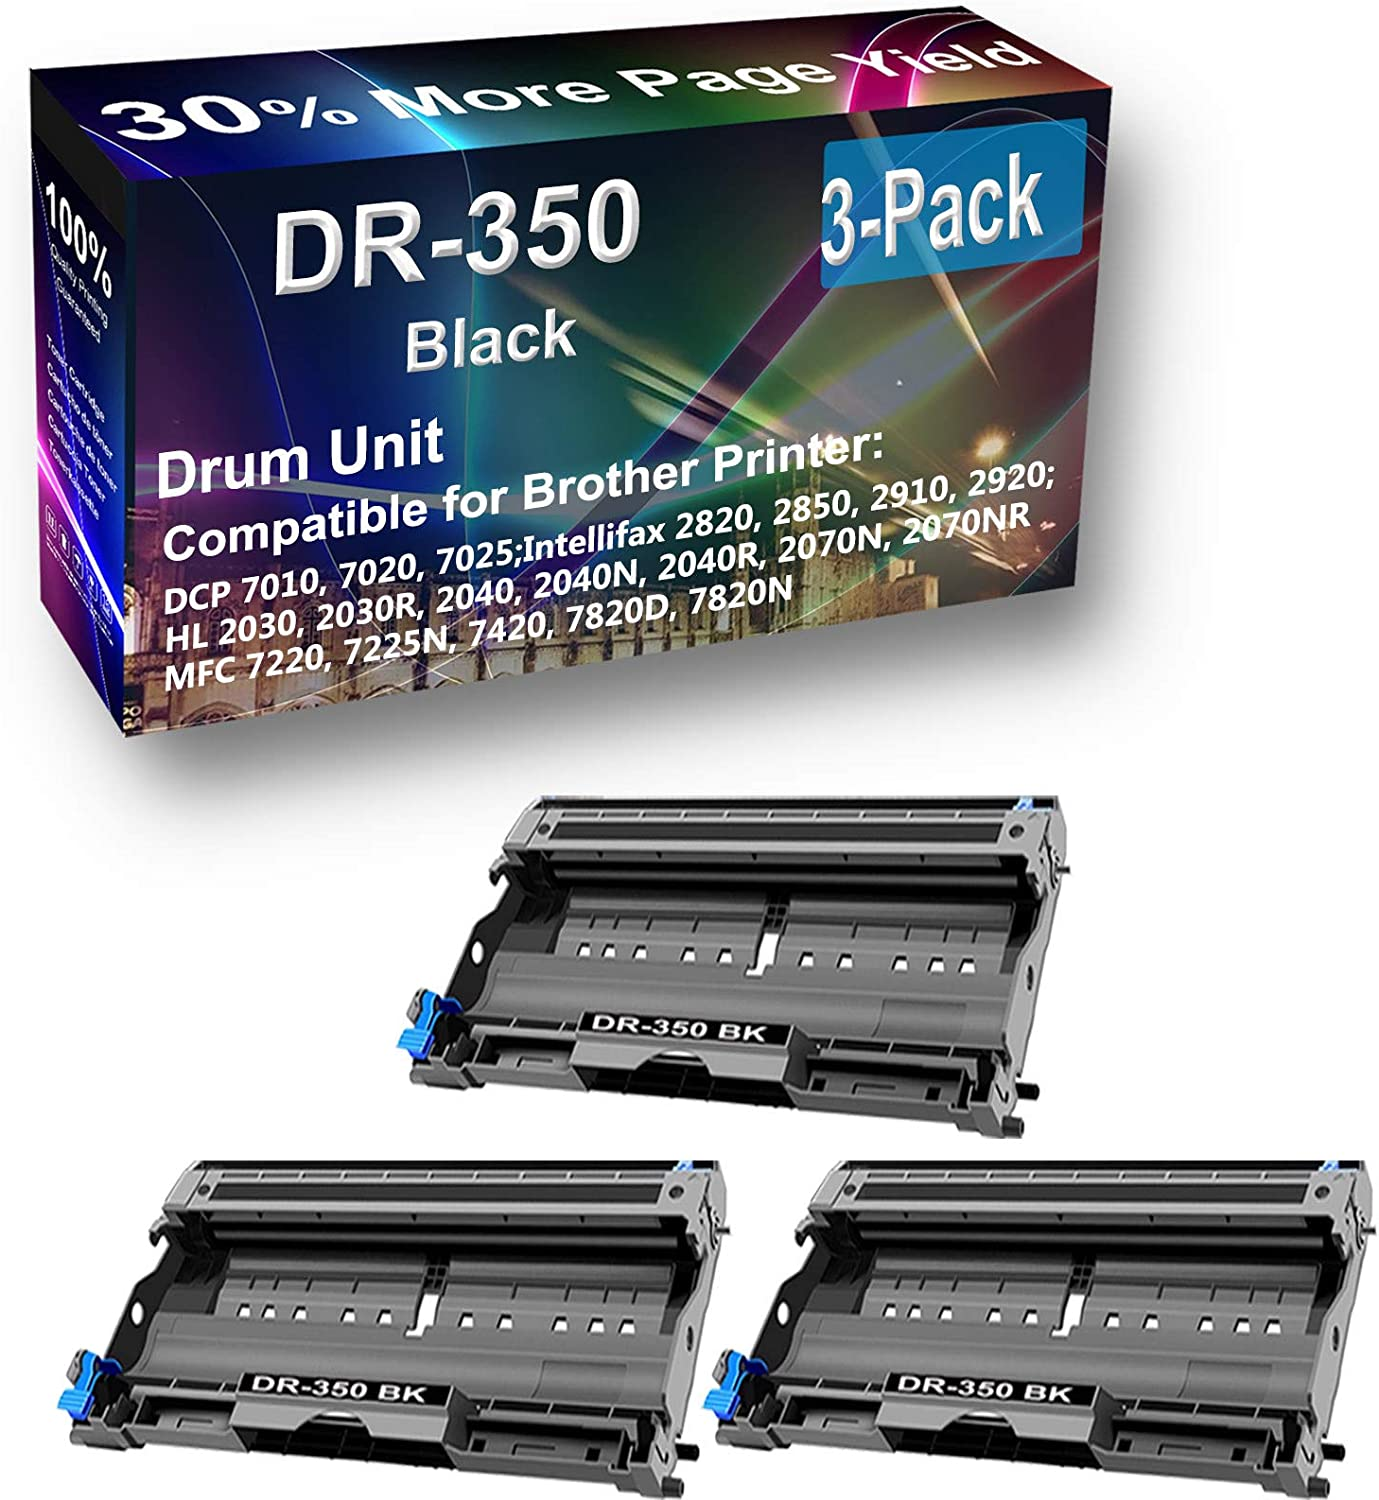 3-Pack Compatible DR350 DR-350 Drum use DCP-70 Kit Direct store Japan Maker New for Brother